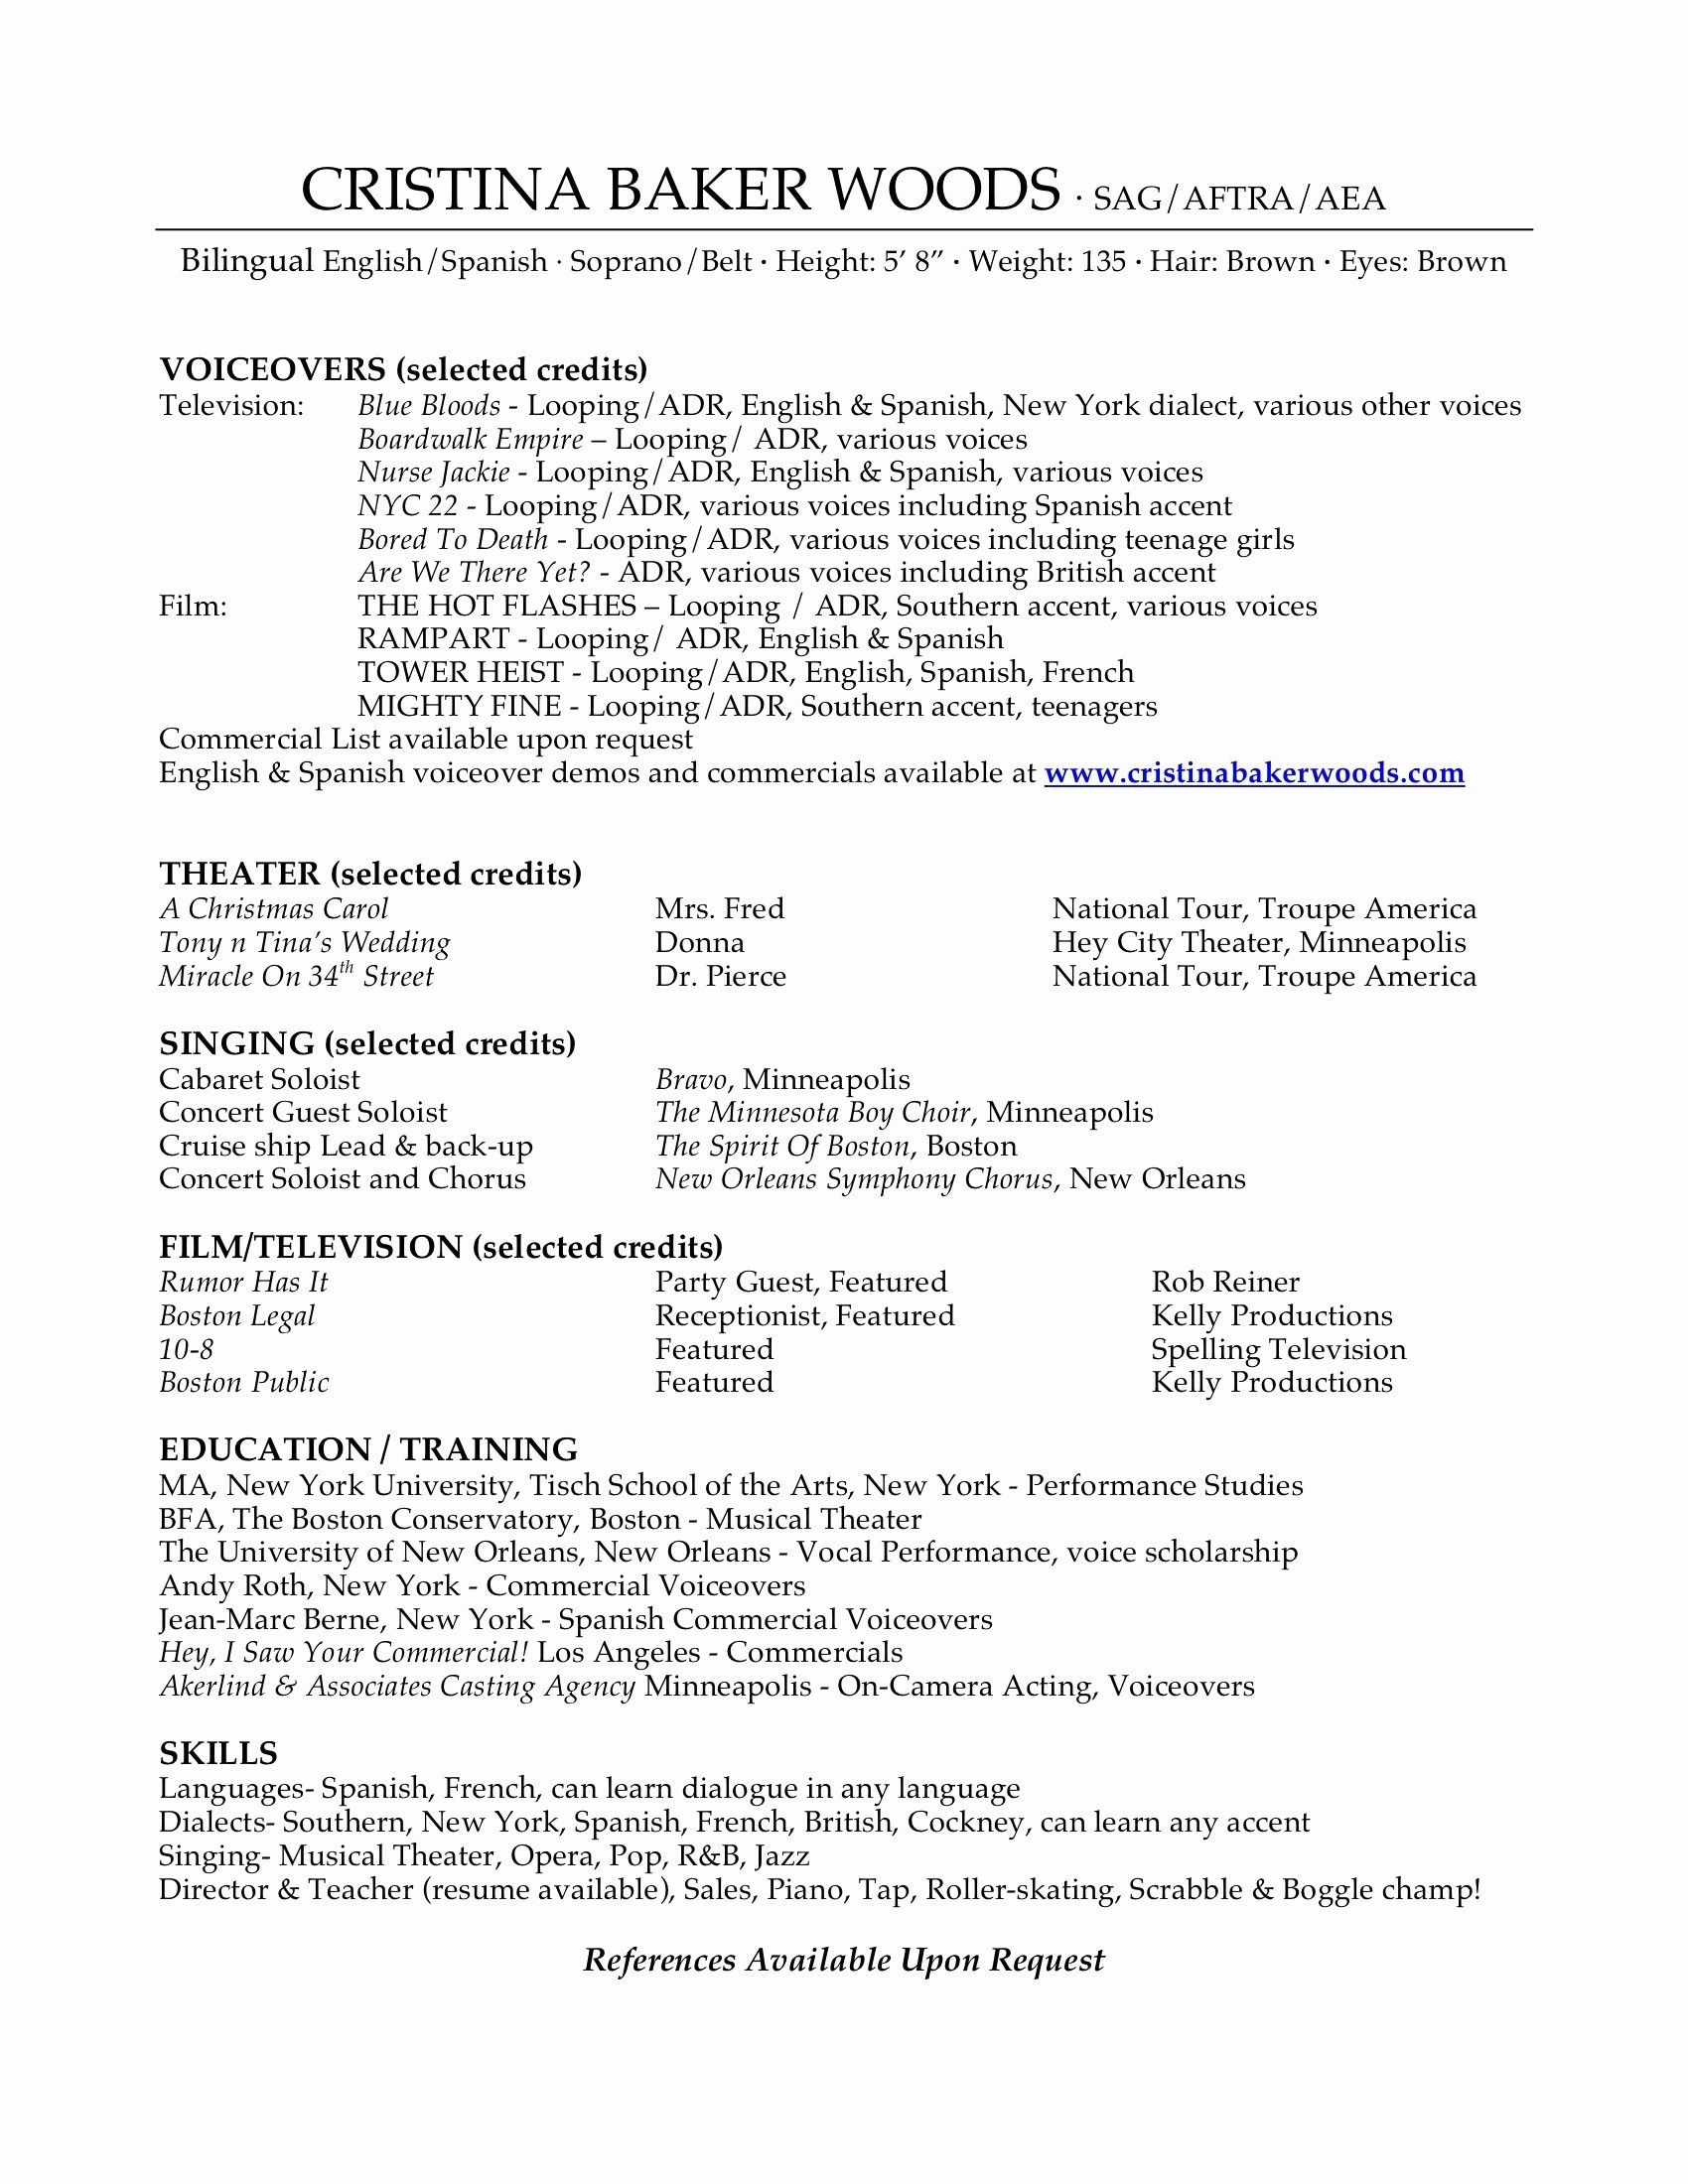 Audition Resume Template - Musical theatre Resume Best Audition Resume Template Badsneaker